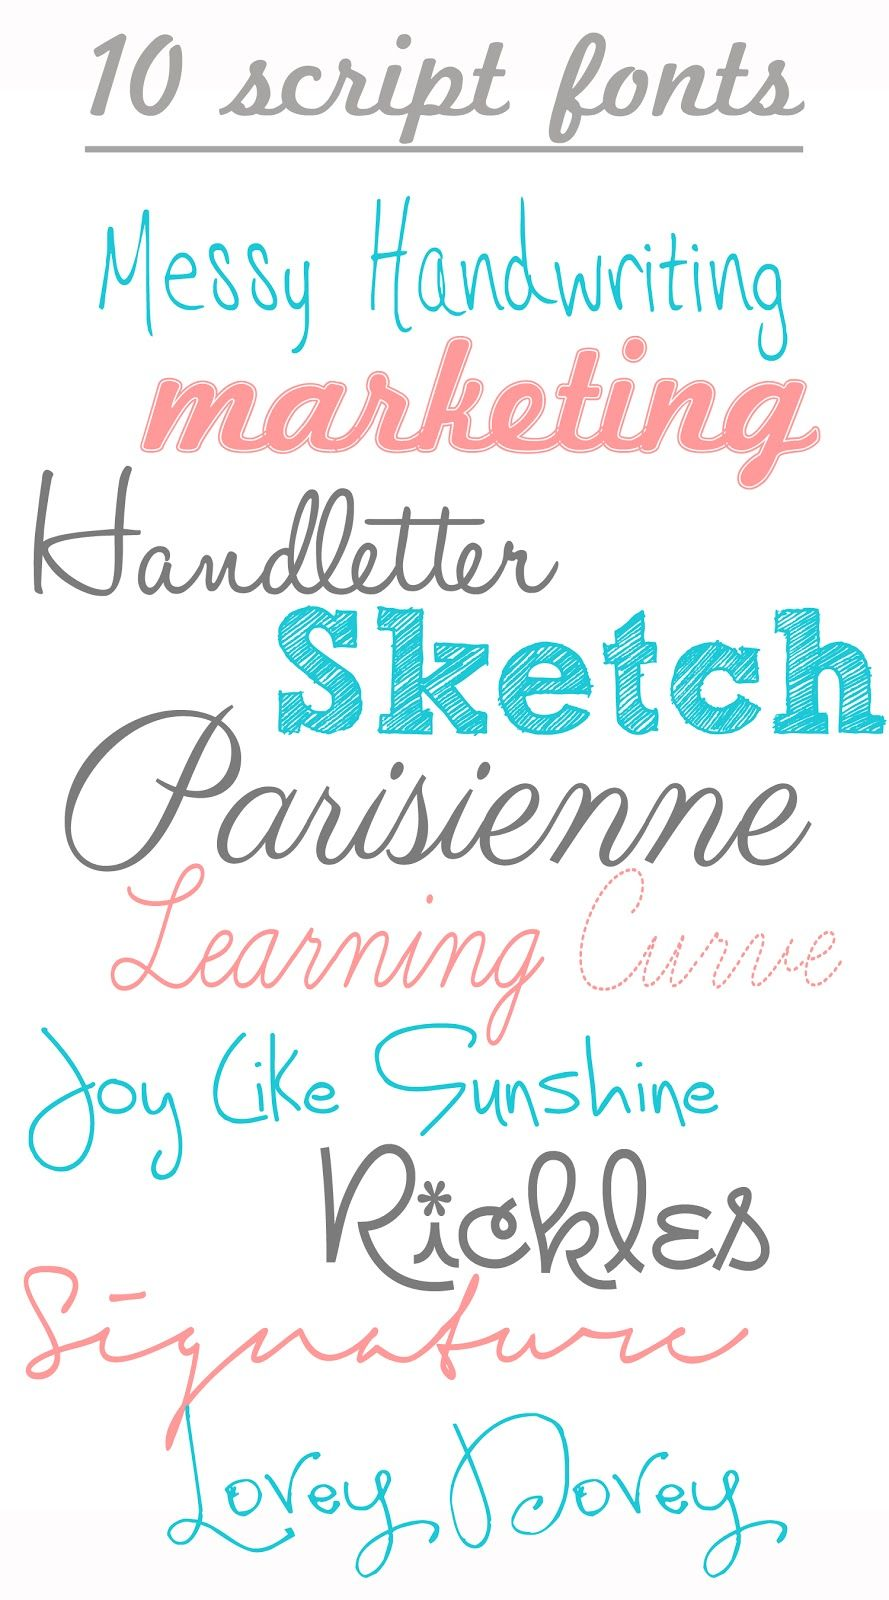 Free handwriting script fonts great for invitations and